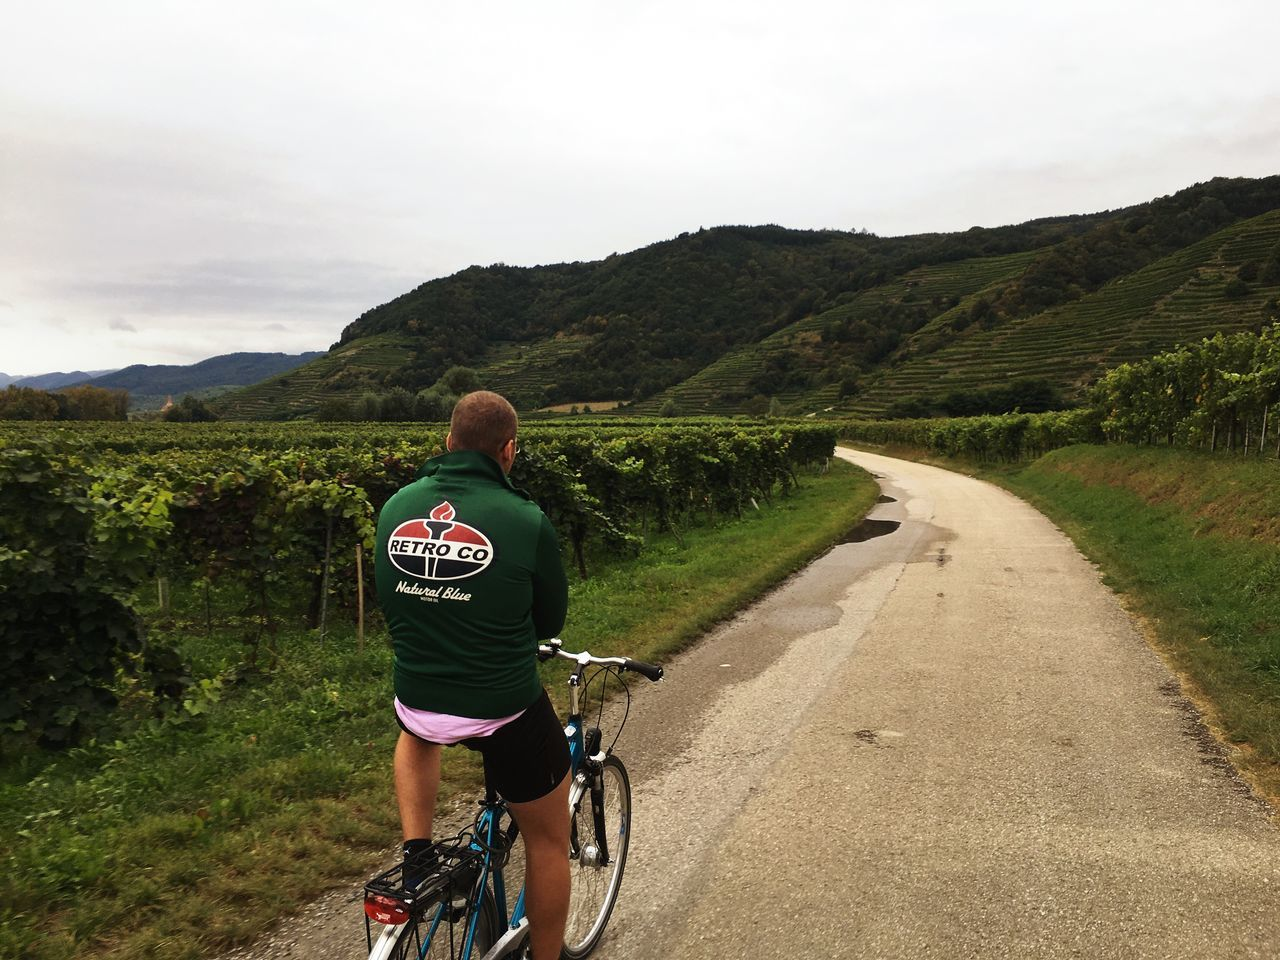 Wachau with my brother Bicycle Road Mountain The Way Forward Cycling Leisure Activity Country Road Countryside Brother Wachau Austria Vineyard People And Places